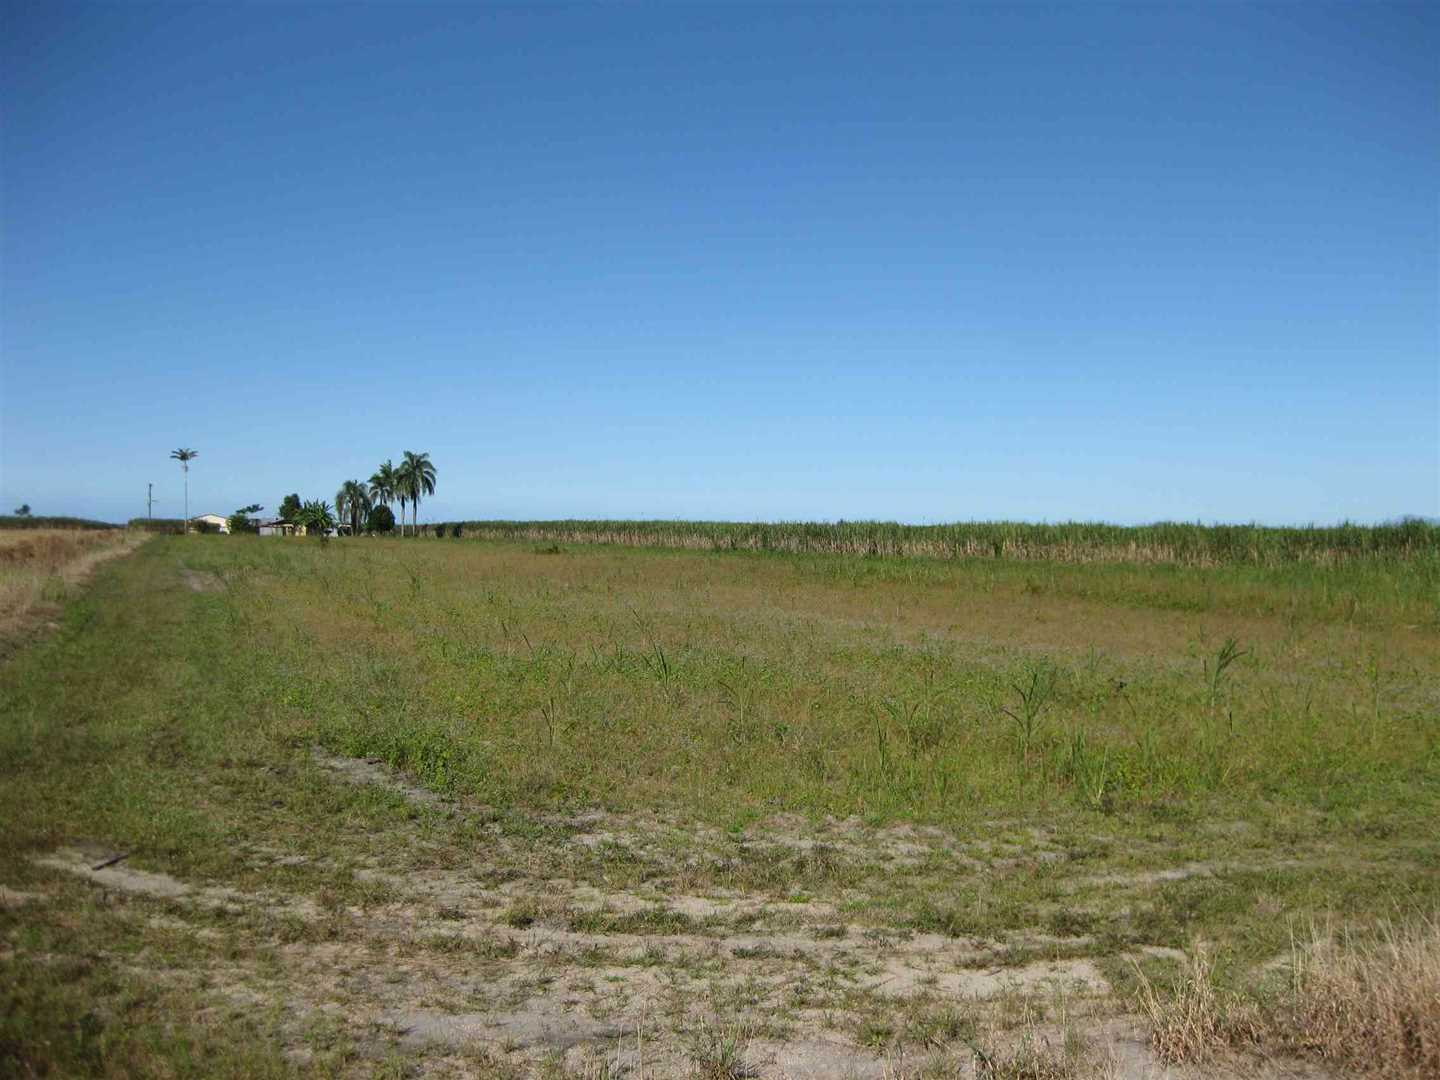 View of part of property showing part of fallow cane land, photo 3